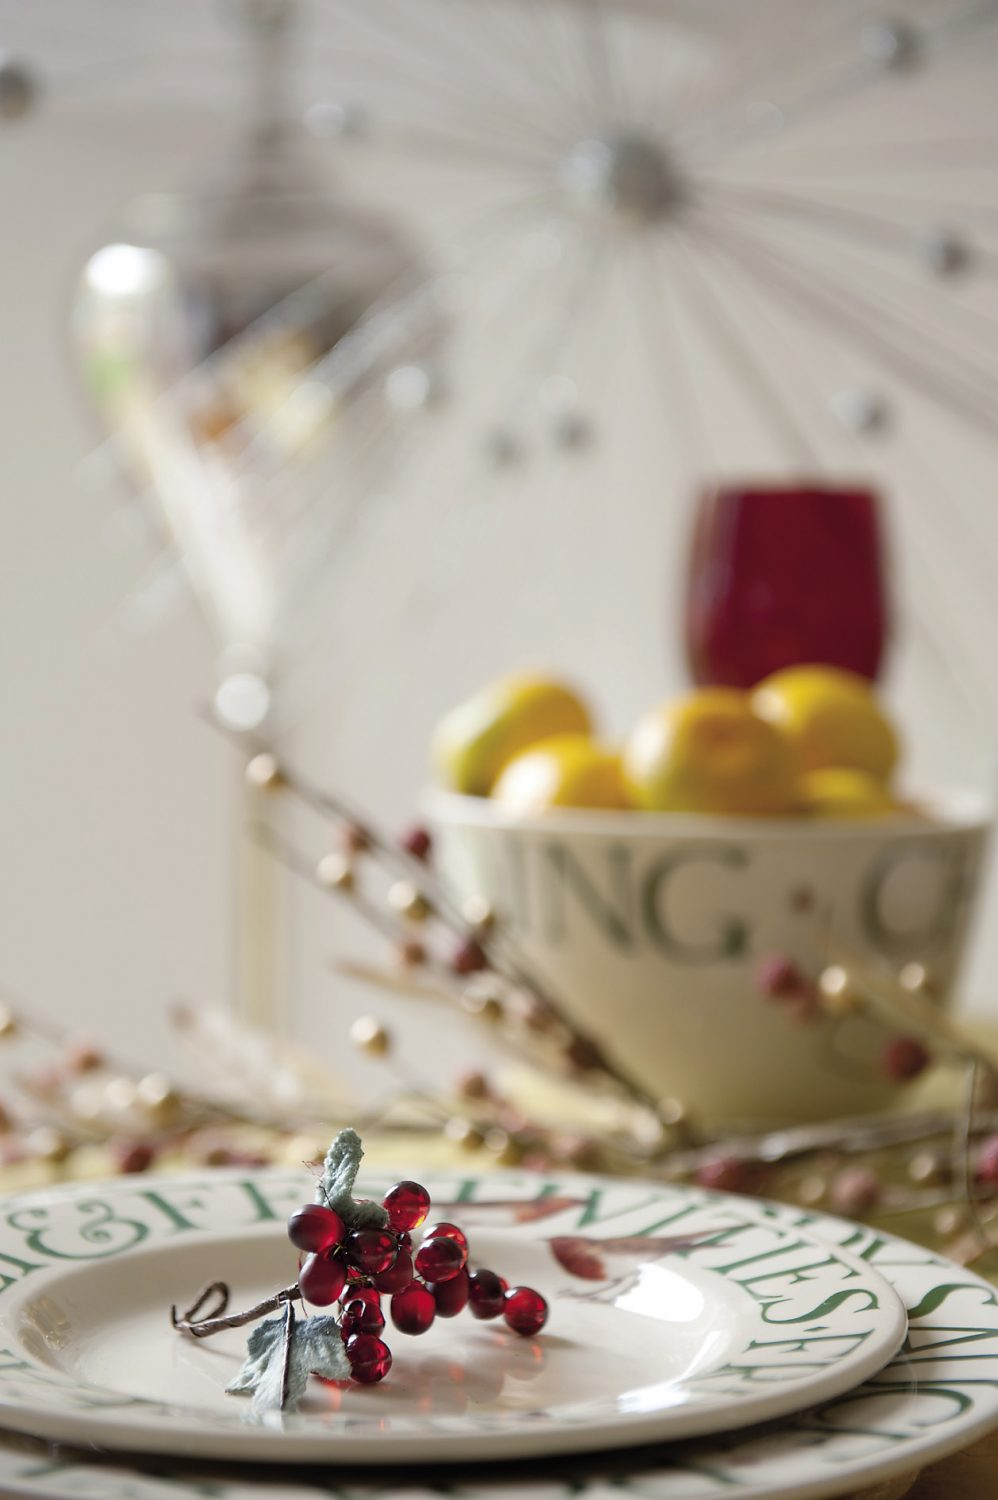 Juicy tangerines and mince pies sprinkled with glitter await guests nestled together on Kitty's Christmas crockery